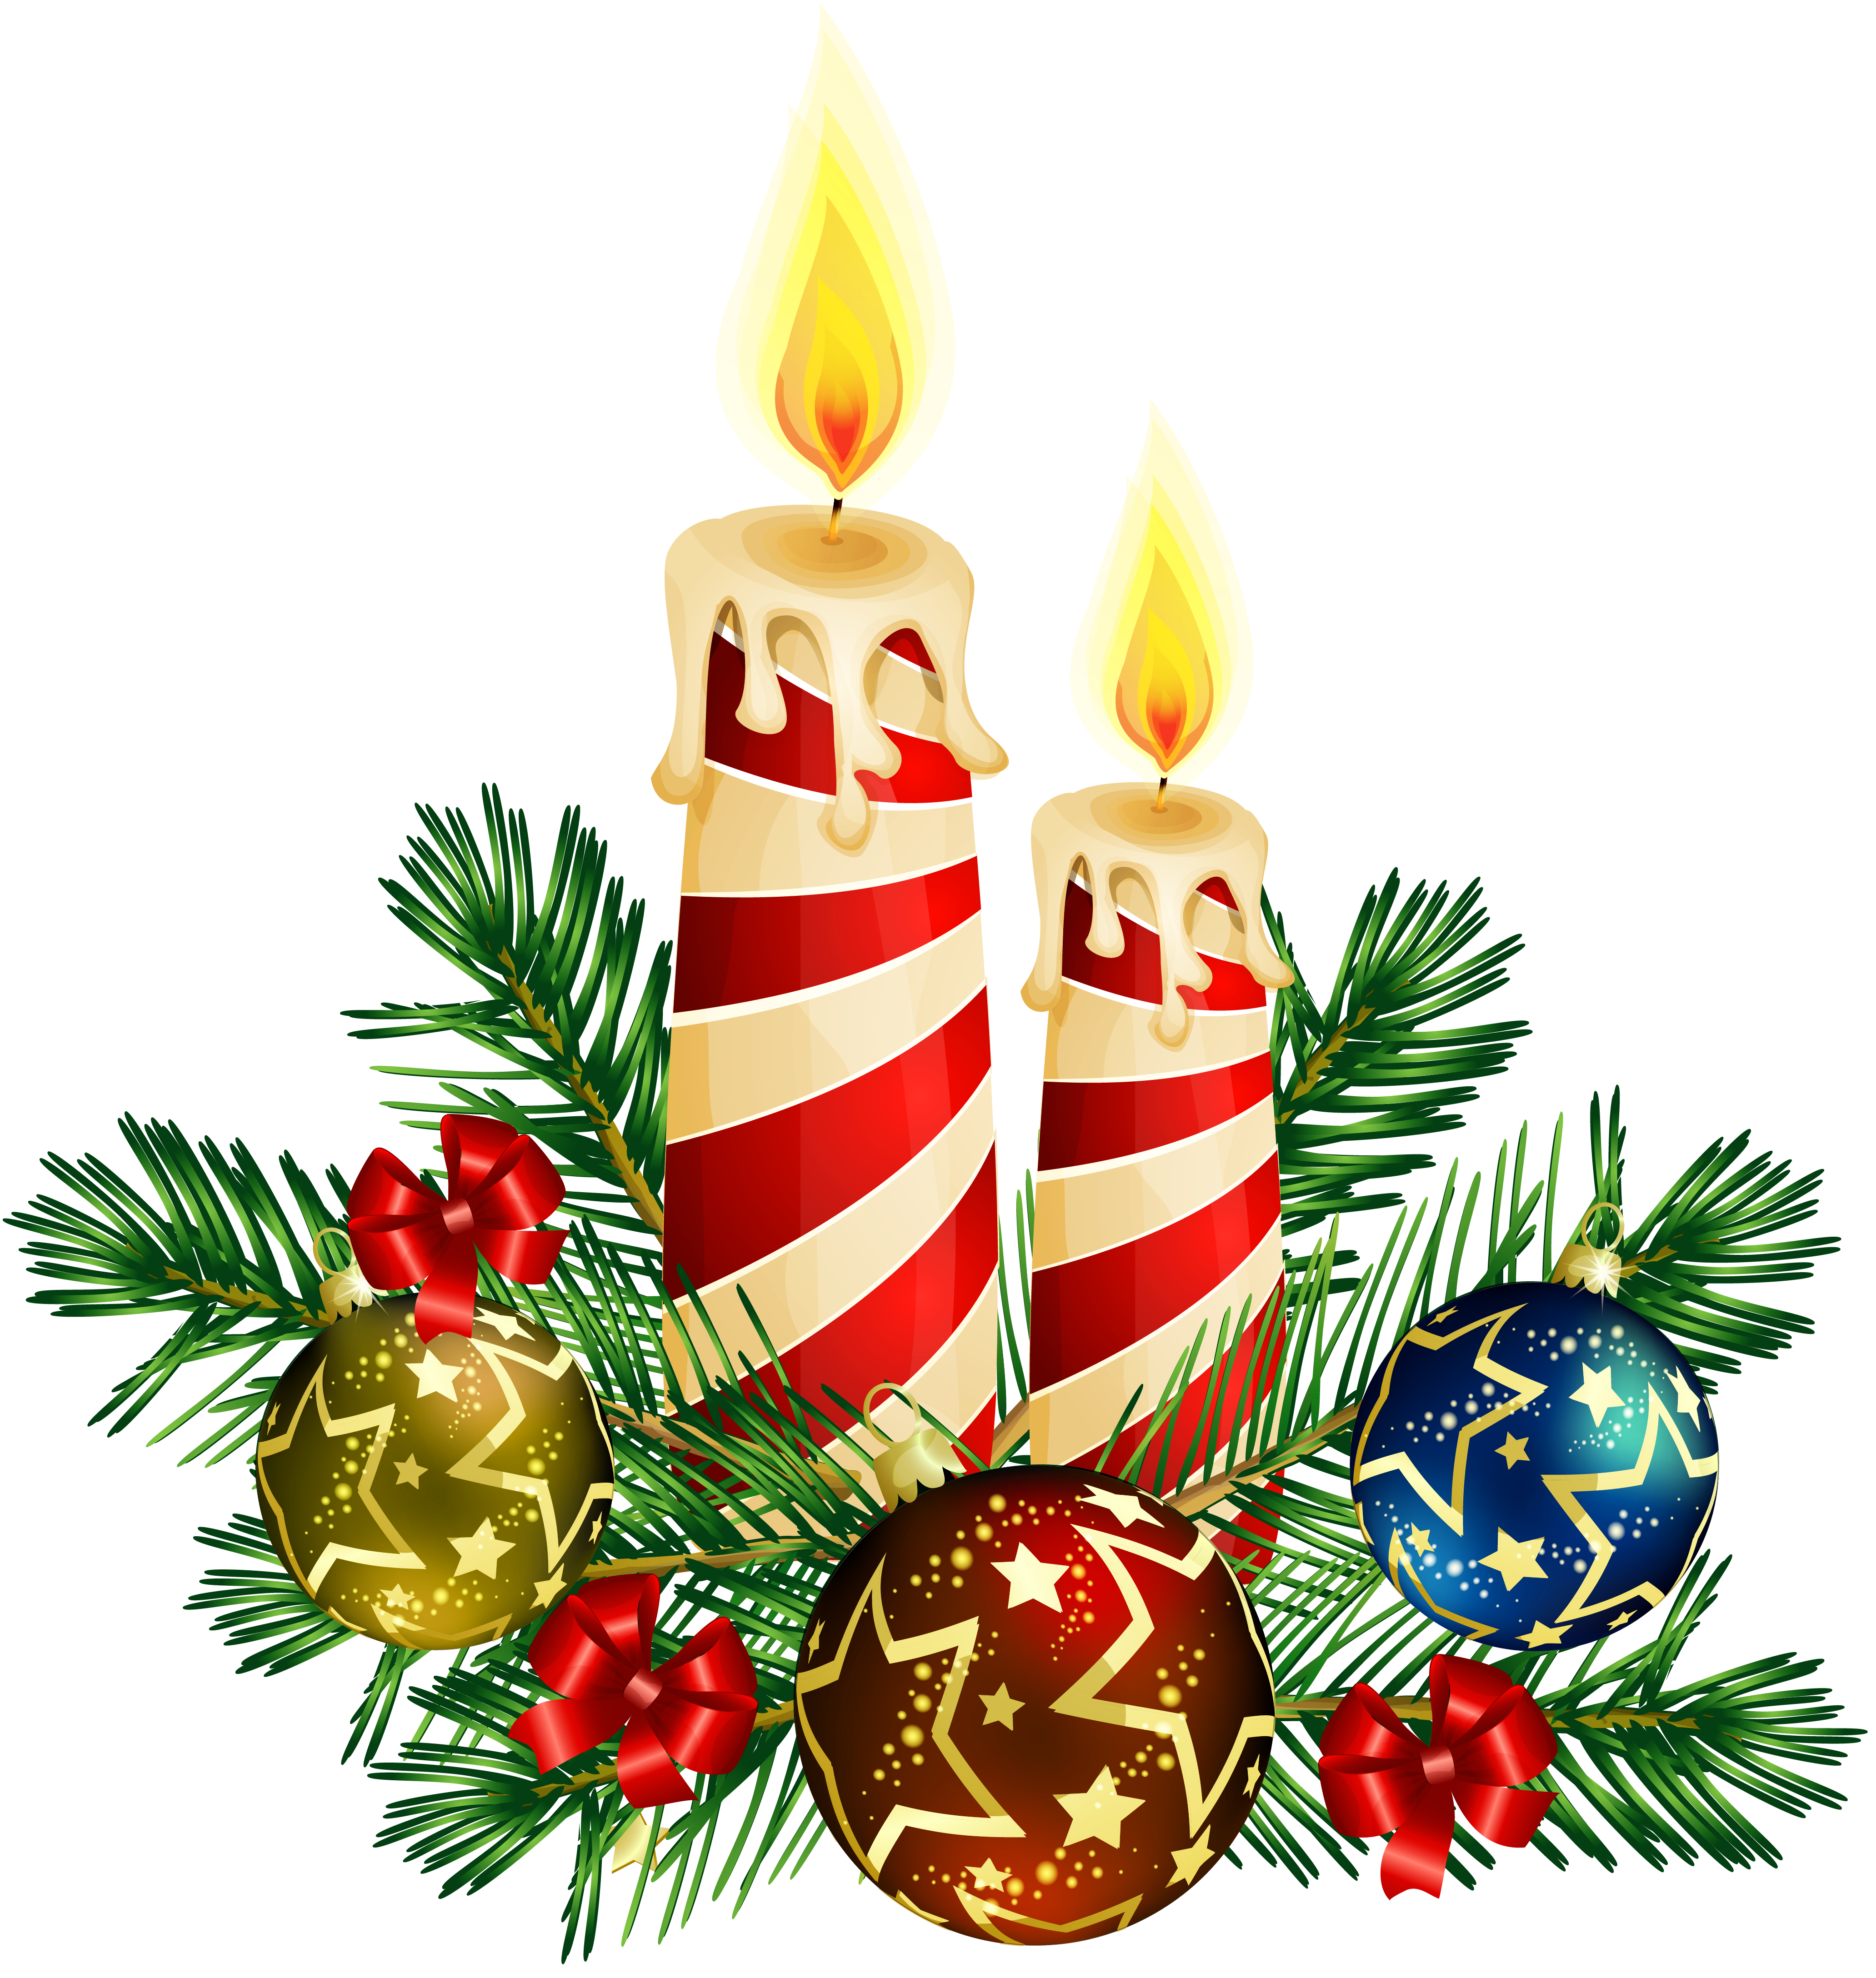 Free Christmas Candle Images, Download Free Clip Art, Free.